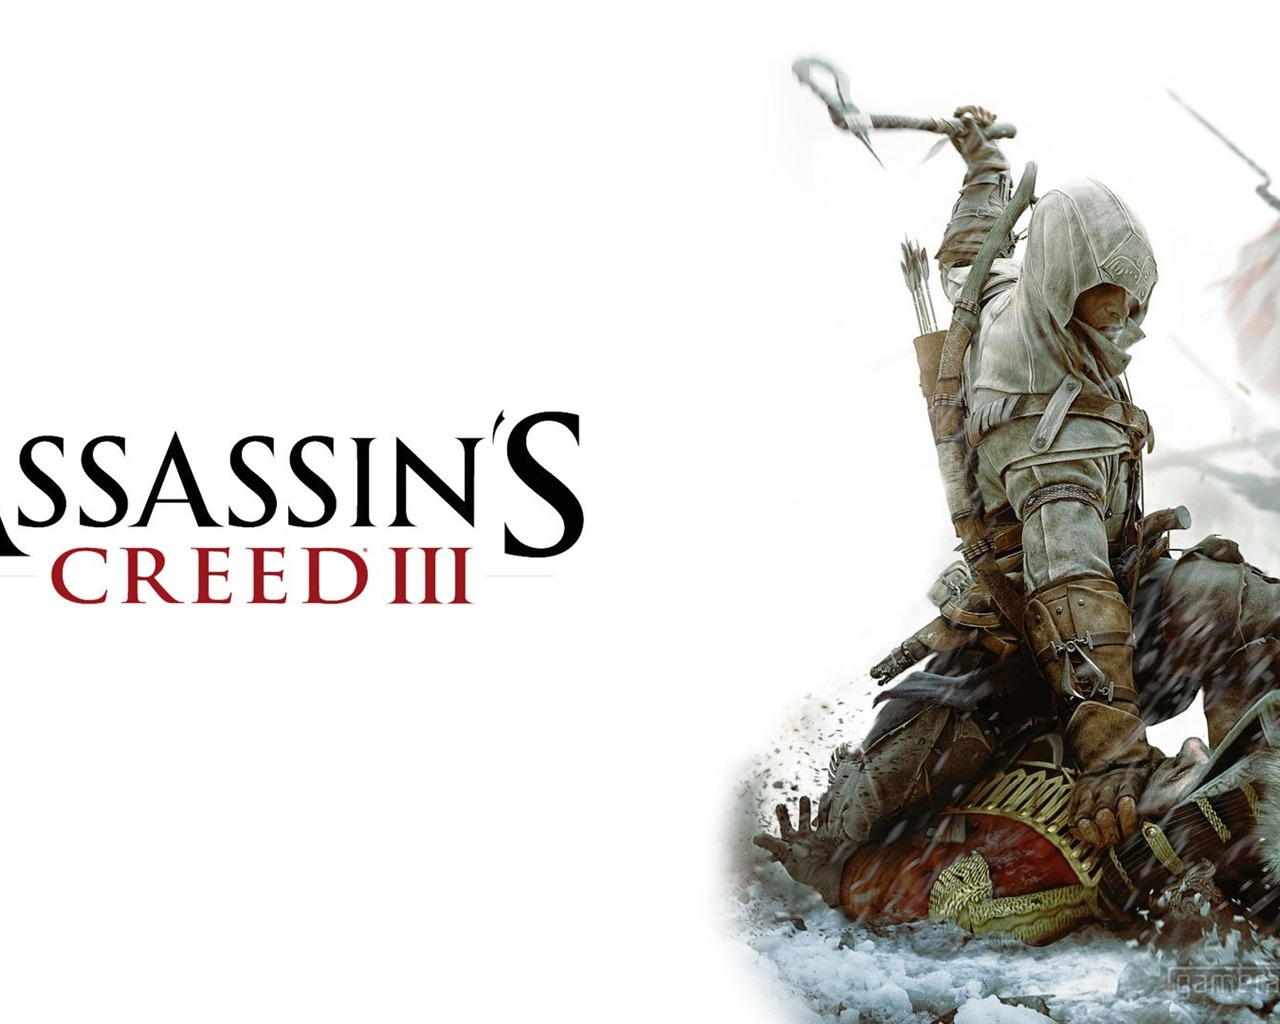 Assassins Creed 3 Game HD Wallpaper 06 Current Size 1280 x 1024 1280x1024